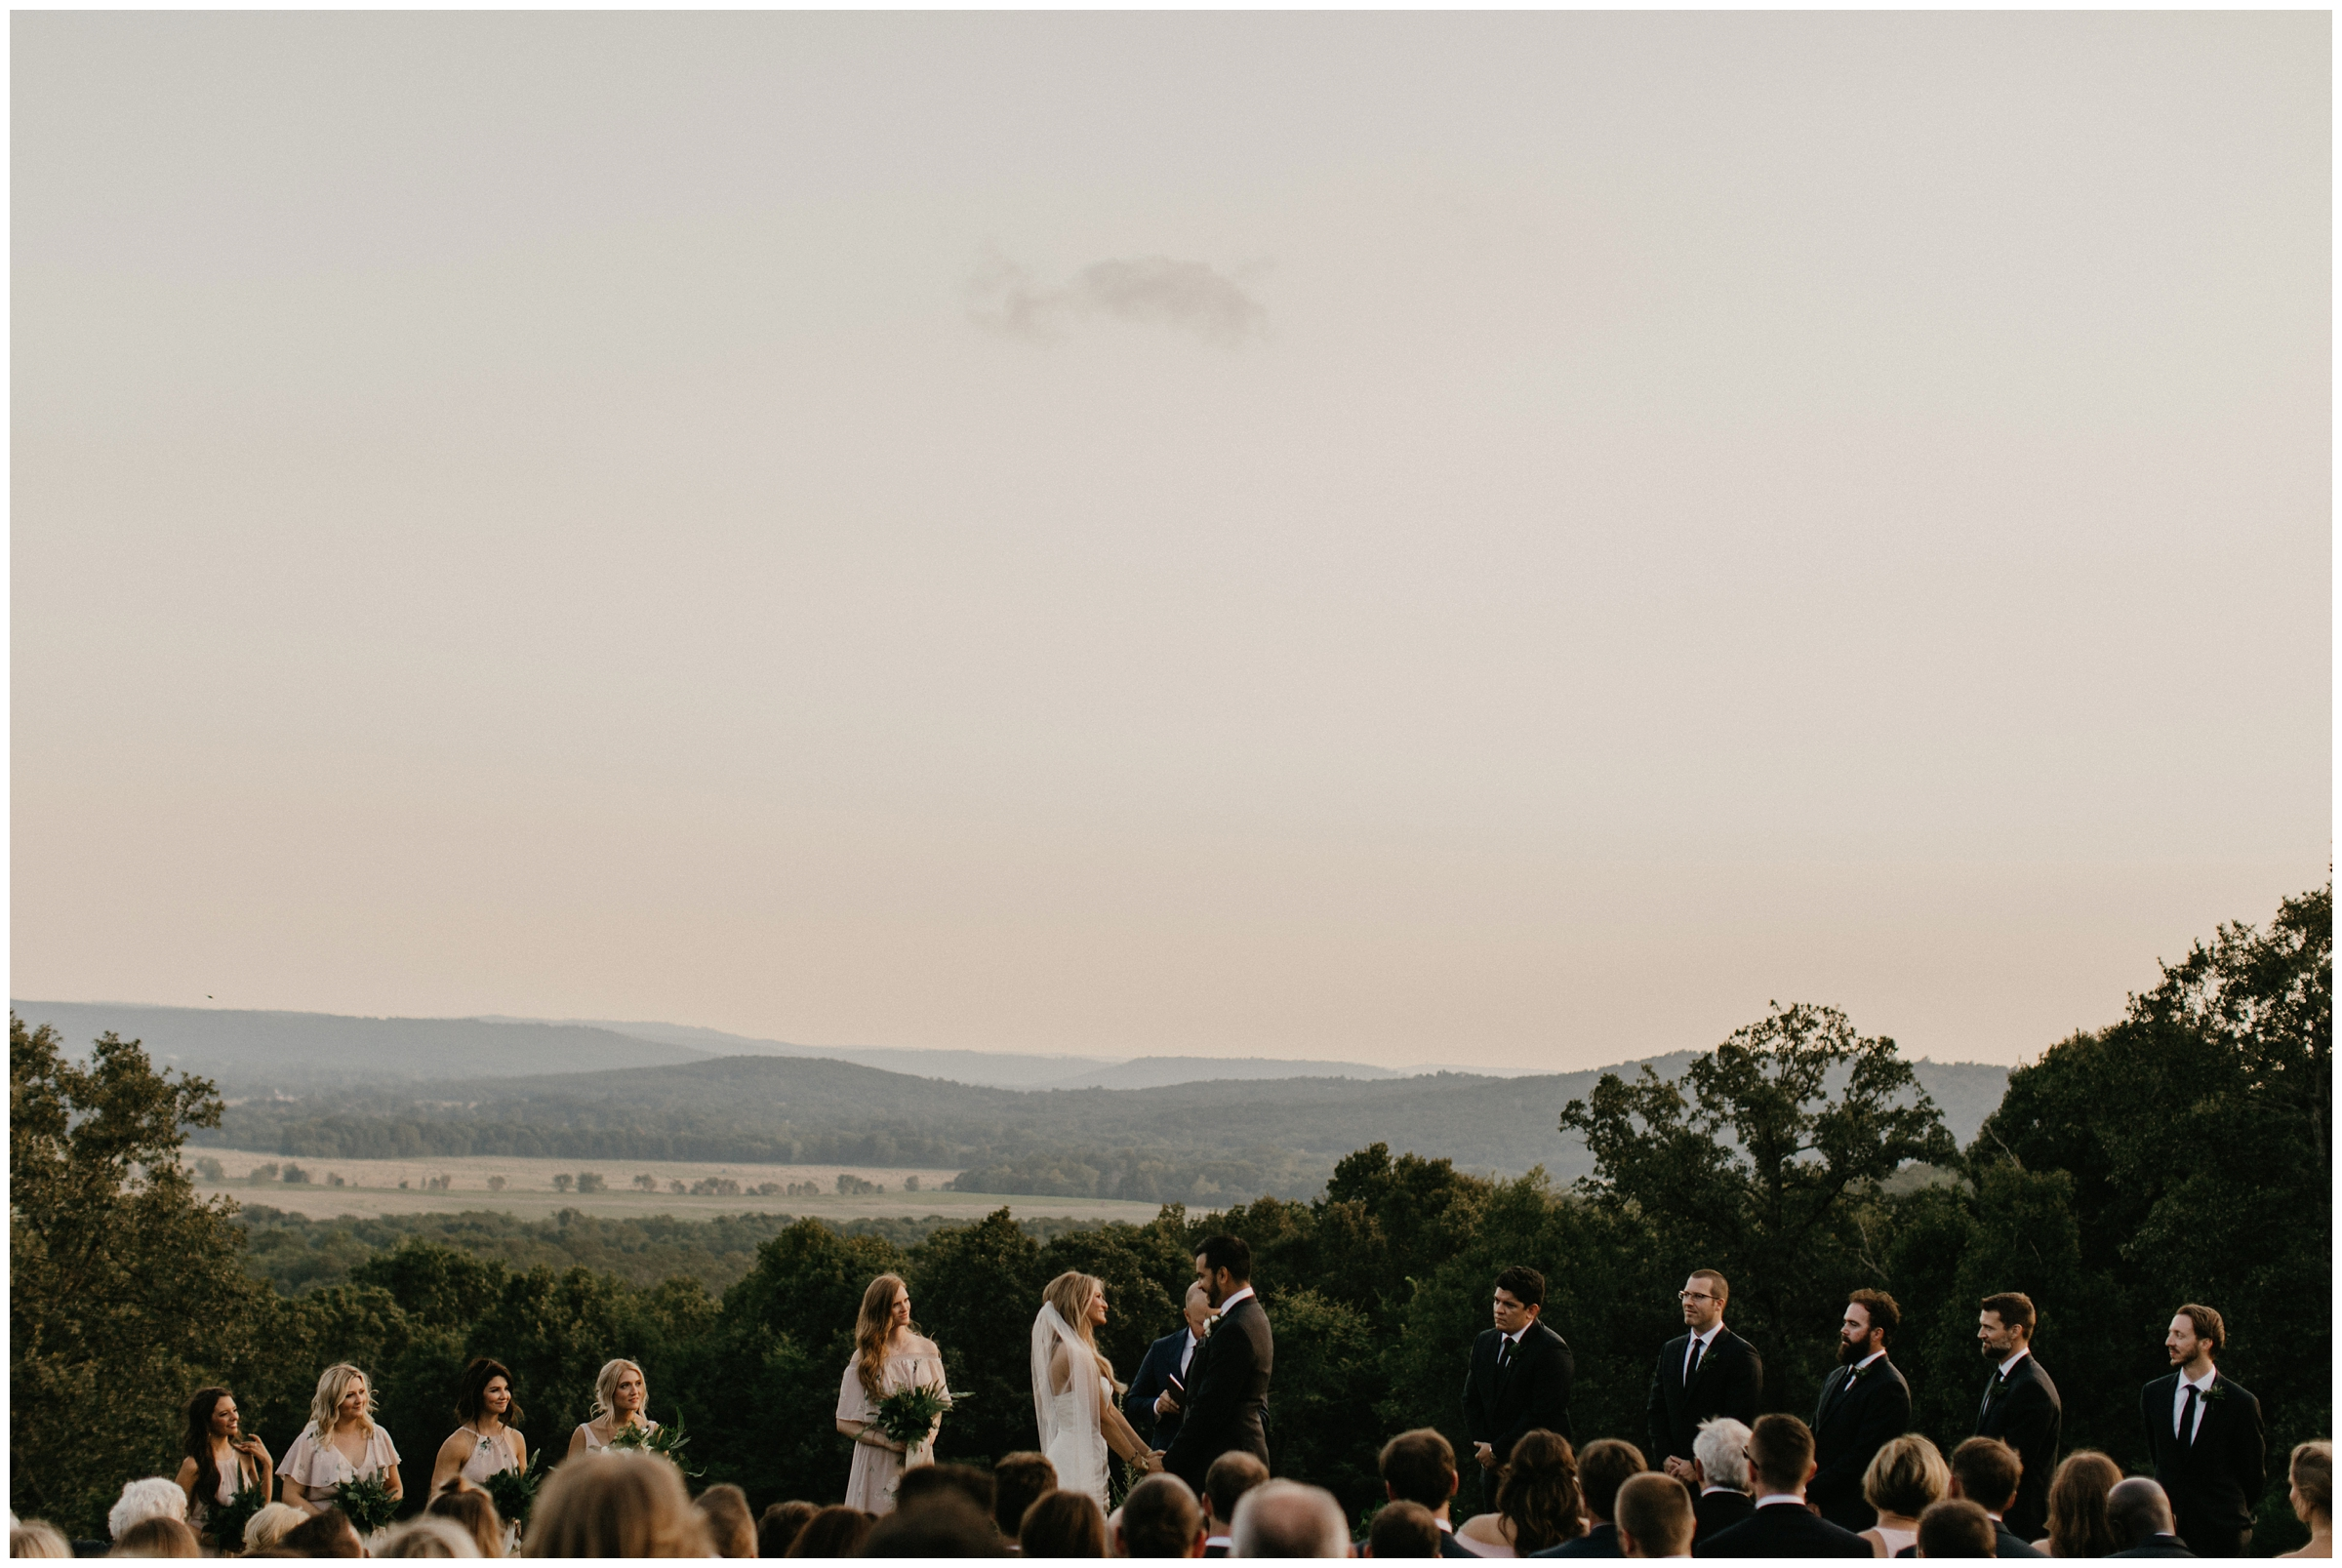 kirsten blowers wedding at autumn ridge plantation in fayetteville arkansas